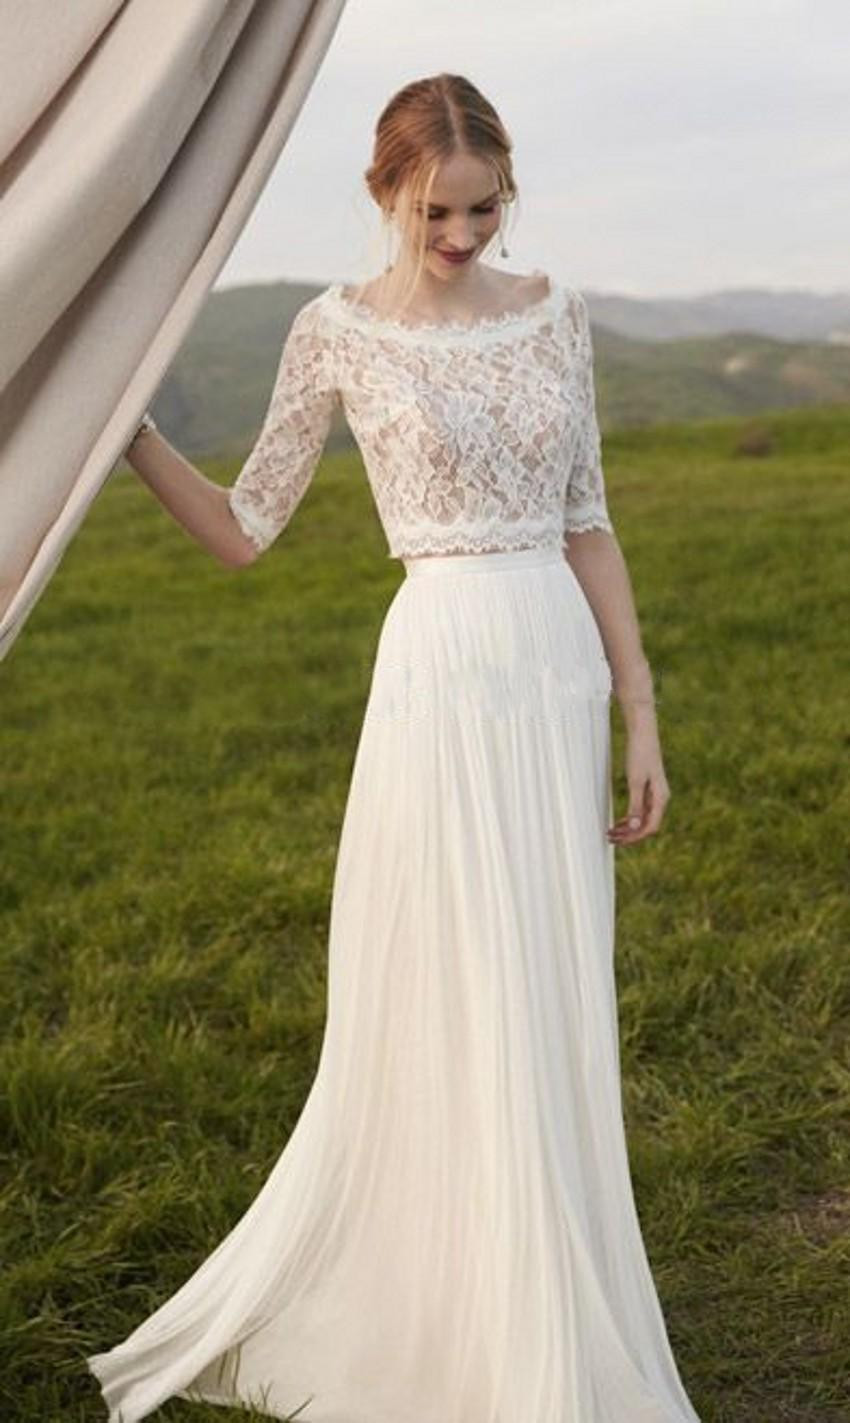 winter wedding dresses cape town winter wedding dresses Long Sleeved Wedding Dresses For Winter Theme